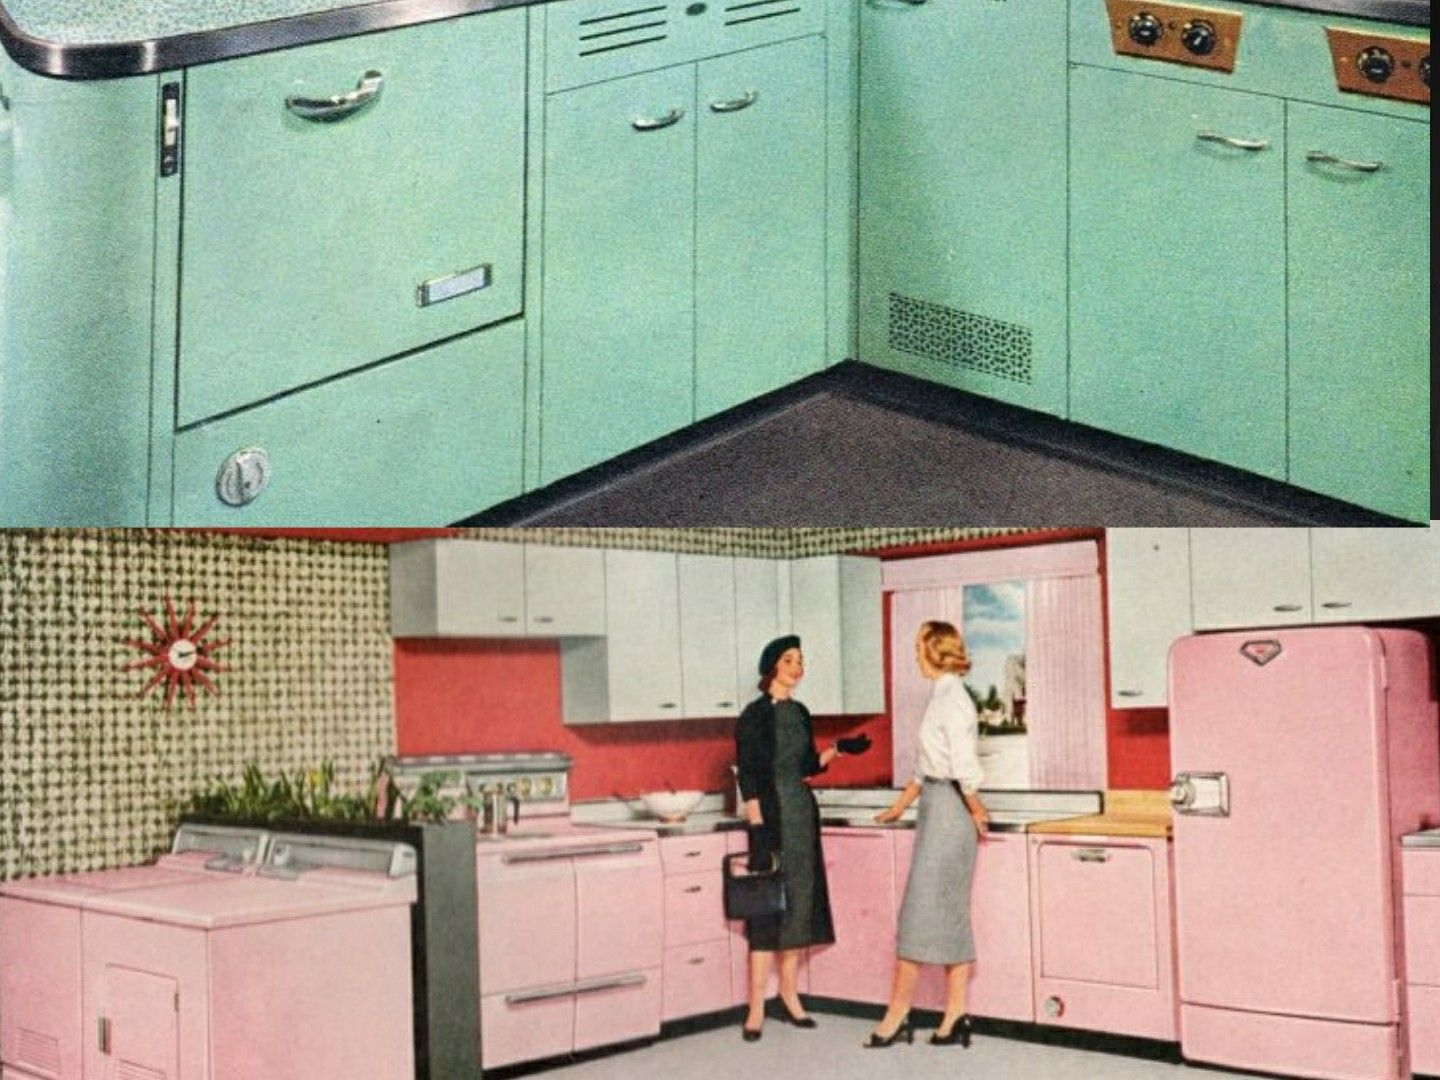 1950s Kitchen Color Trends Pink Turquoise Kitchen Color Trends 1950s Kitchen Retro Kitchen